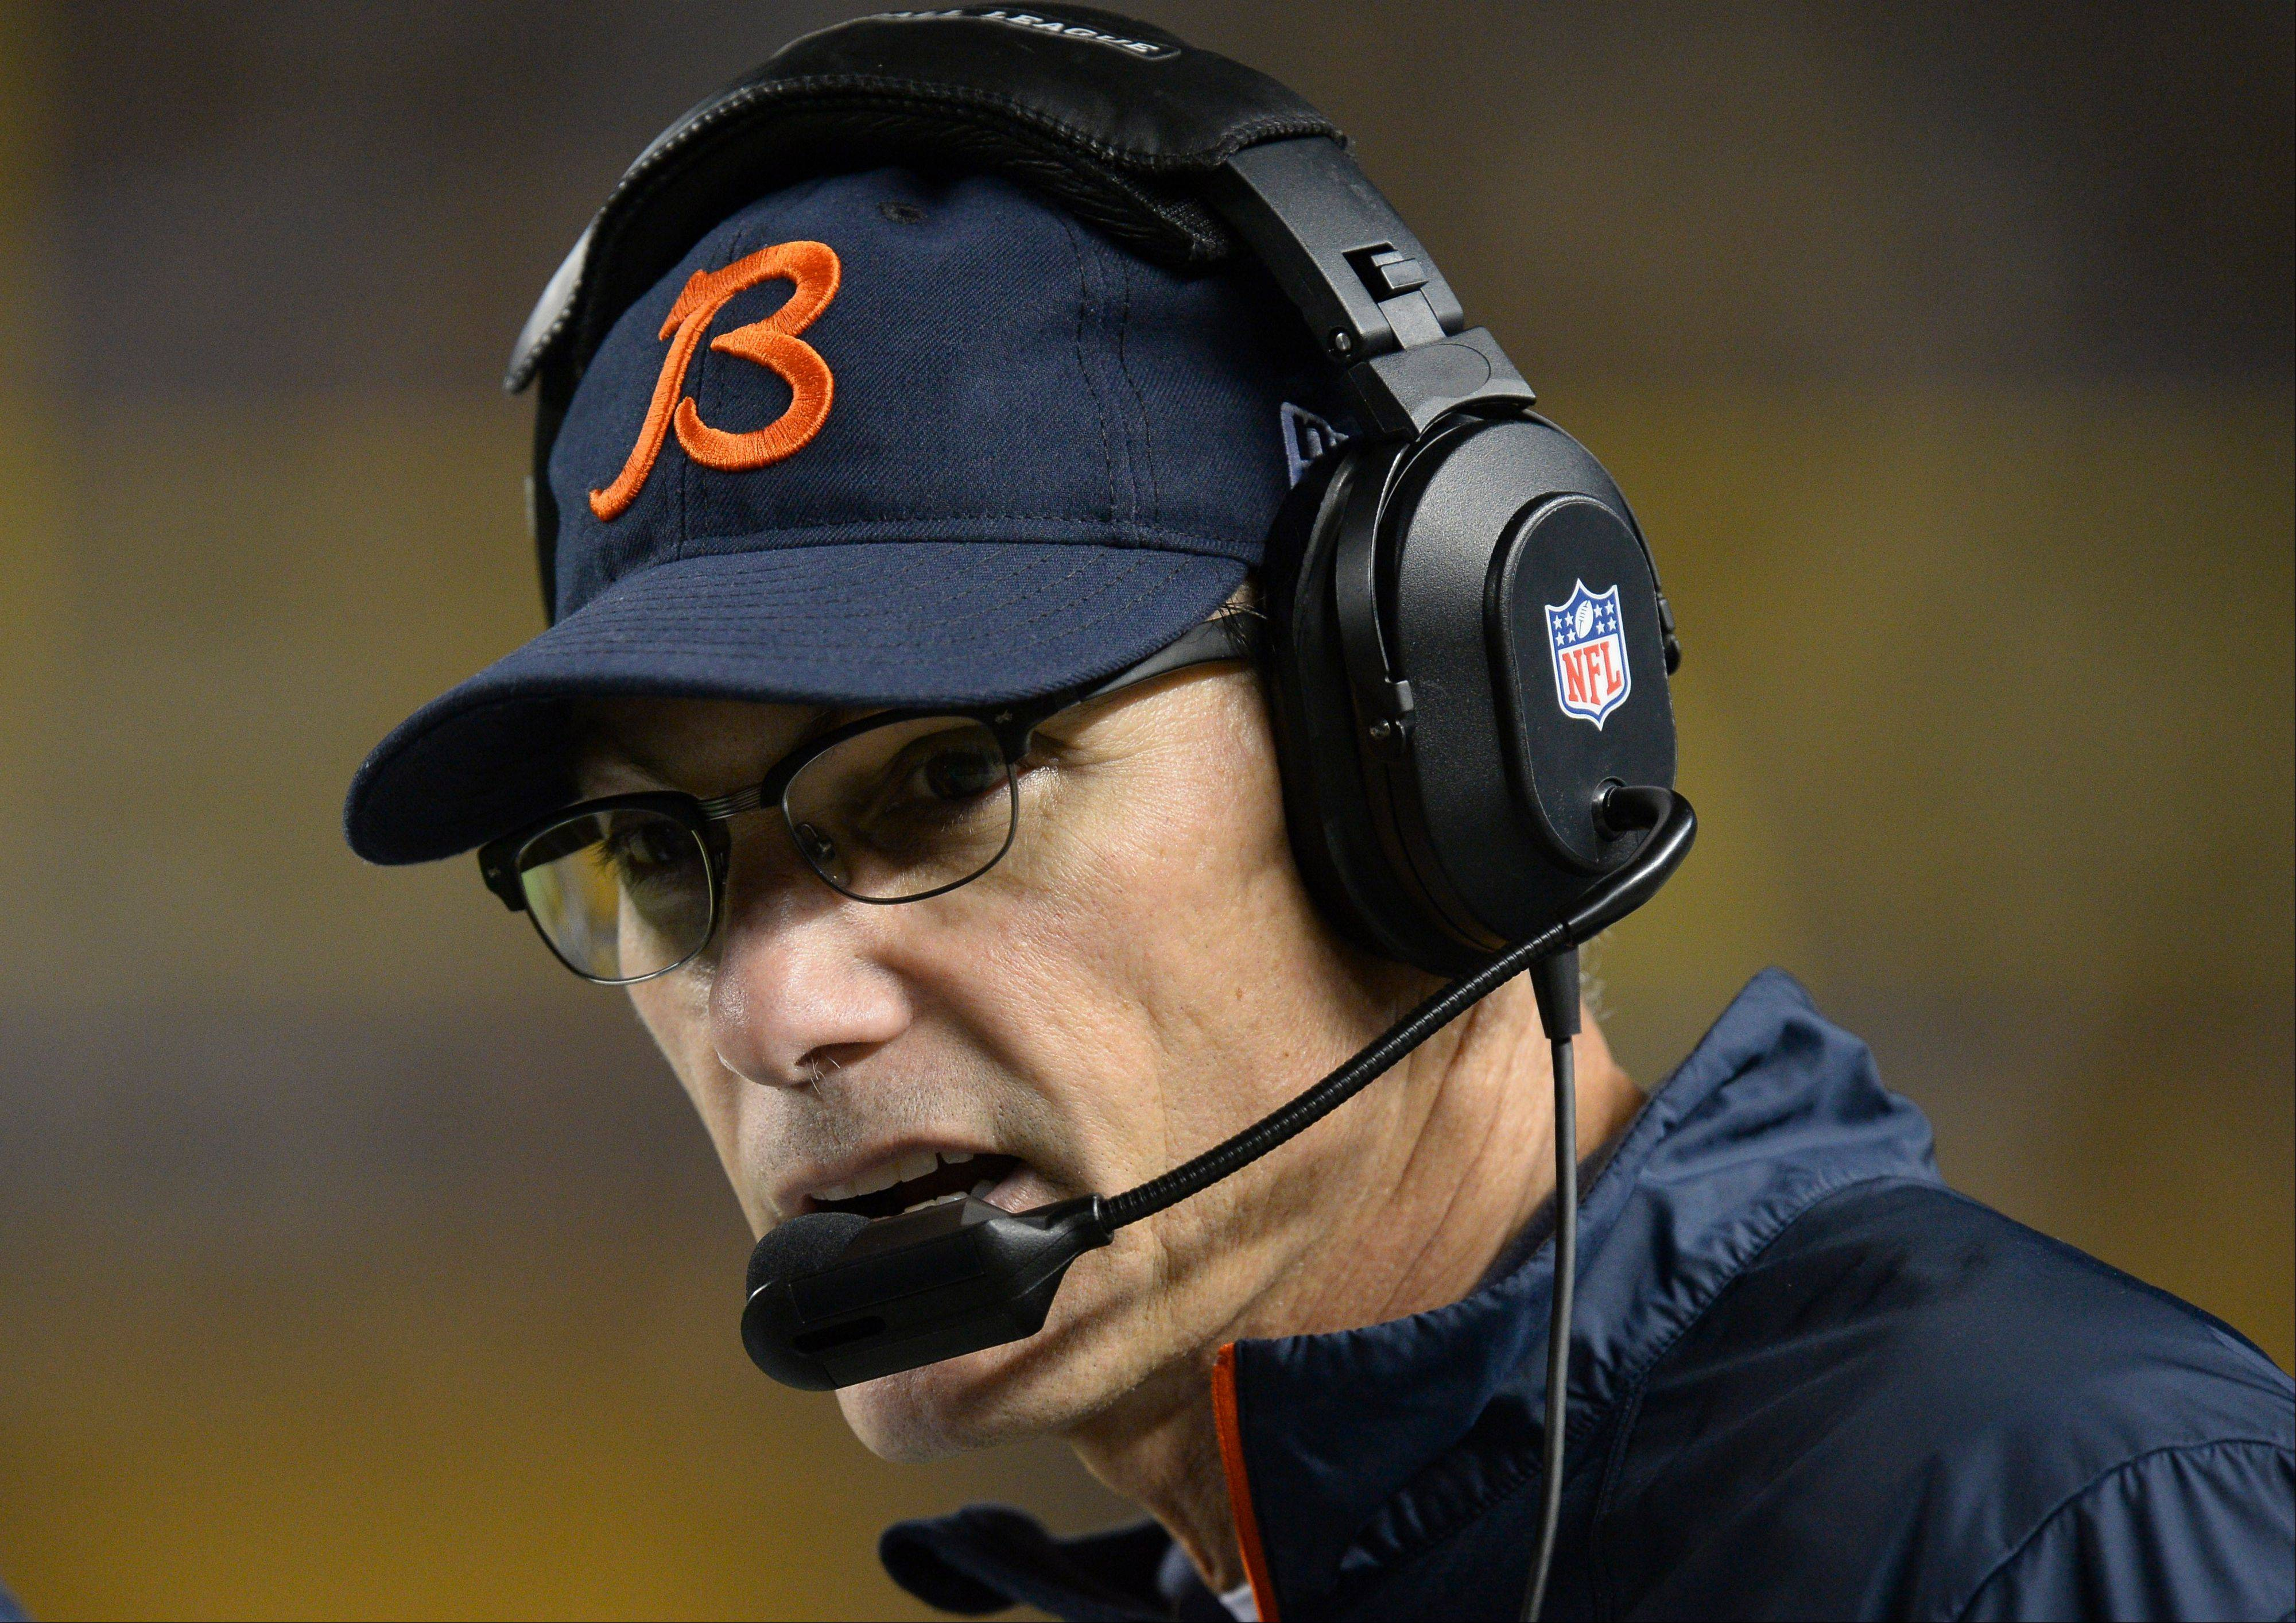 Bears head coach Marc Trestman said Thursday he expects Jay Cutler to perform well on Sunday. Trestman said Cutler will start against Cleveland in his first game since injuring his ankle on Nov. 10.